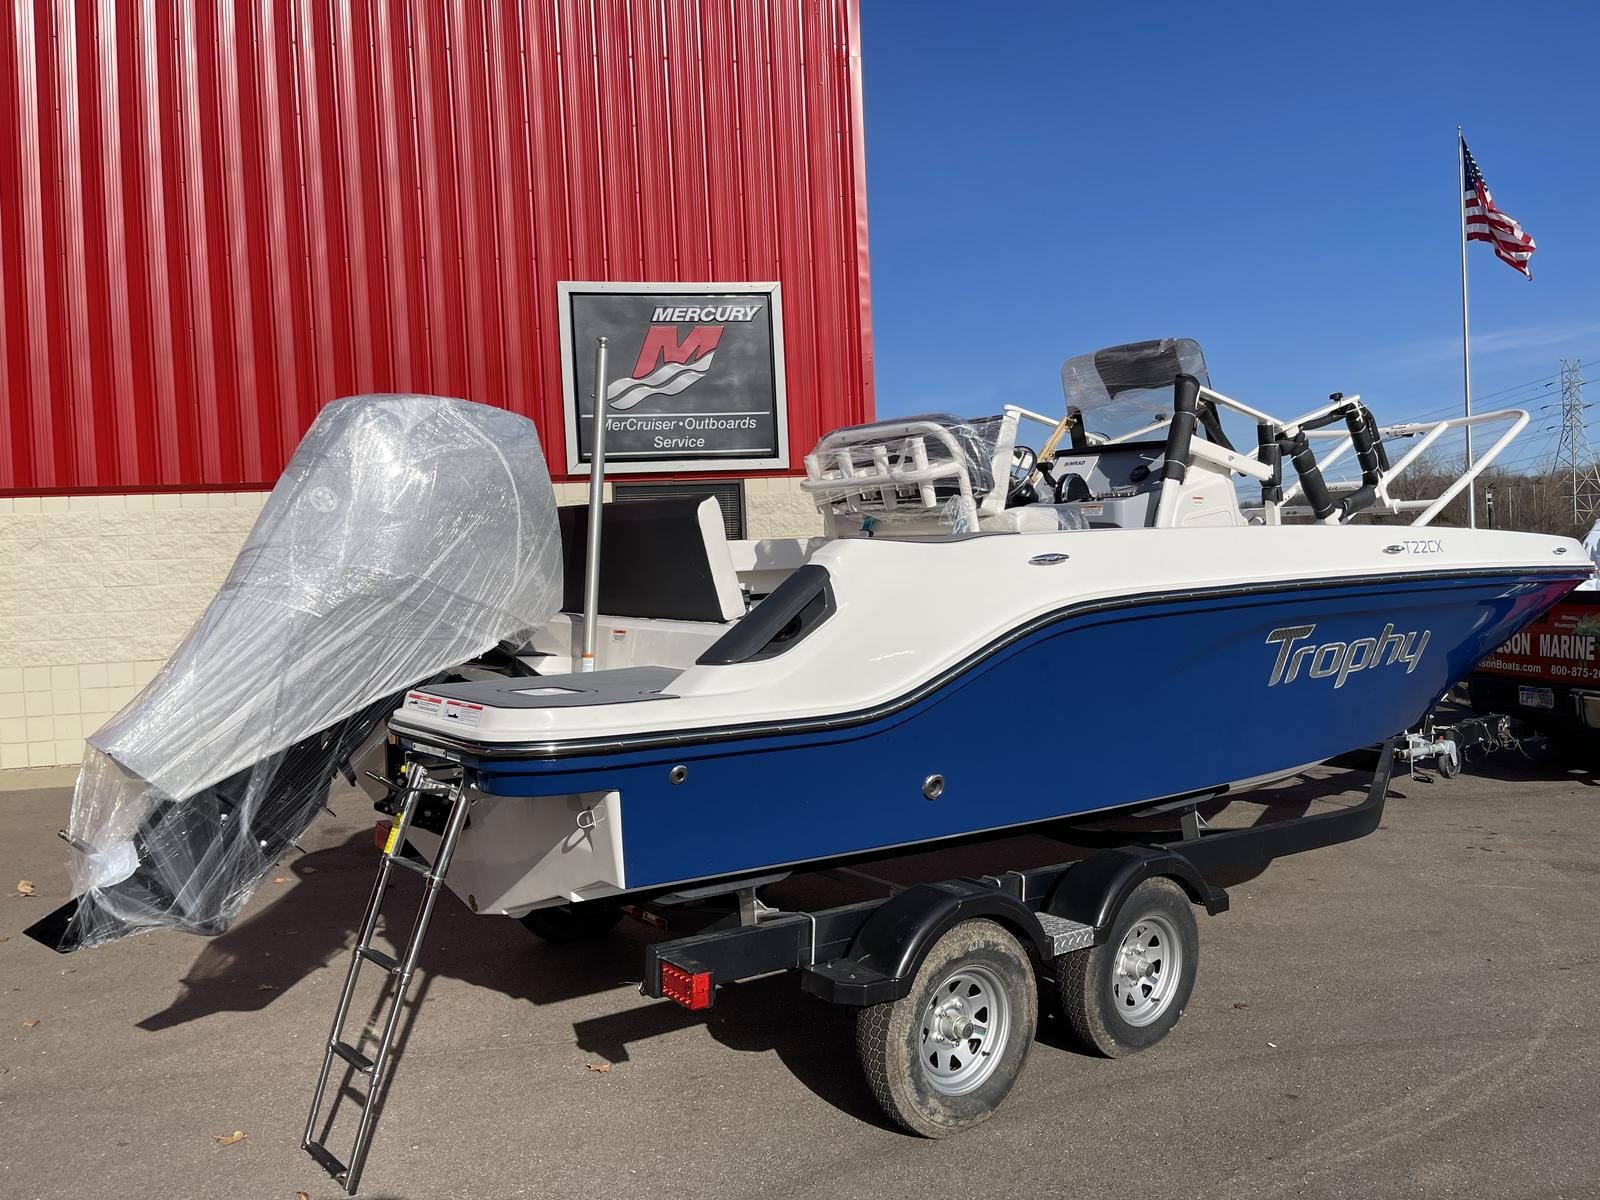 2021 Bayliner boat for sale, model of the boat is T22CX & Image # 11 of 17